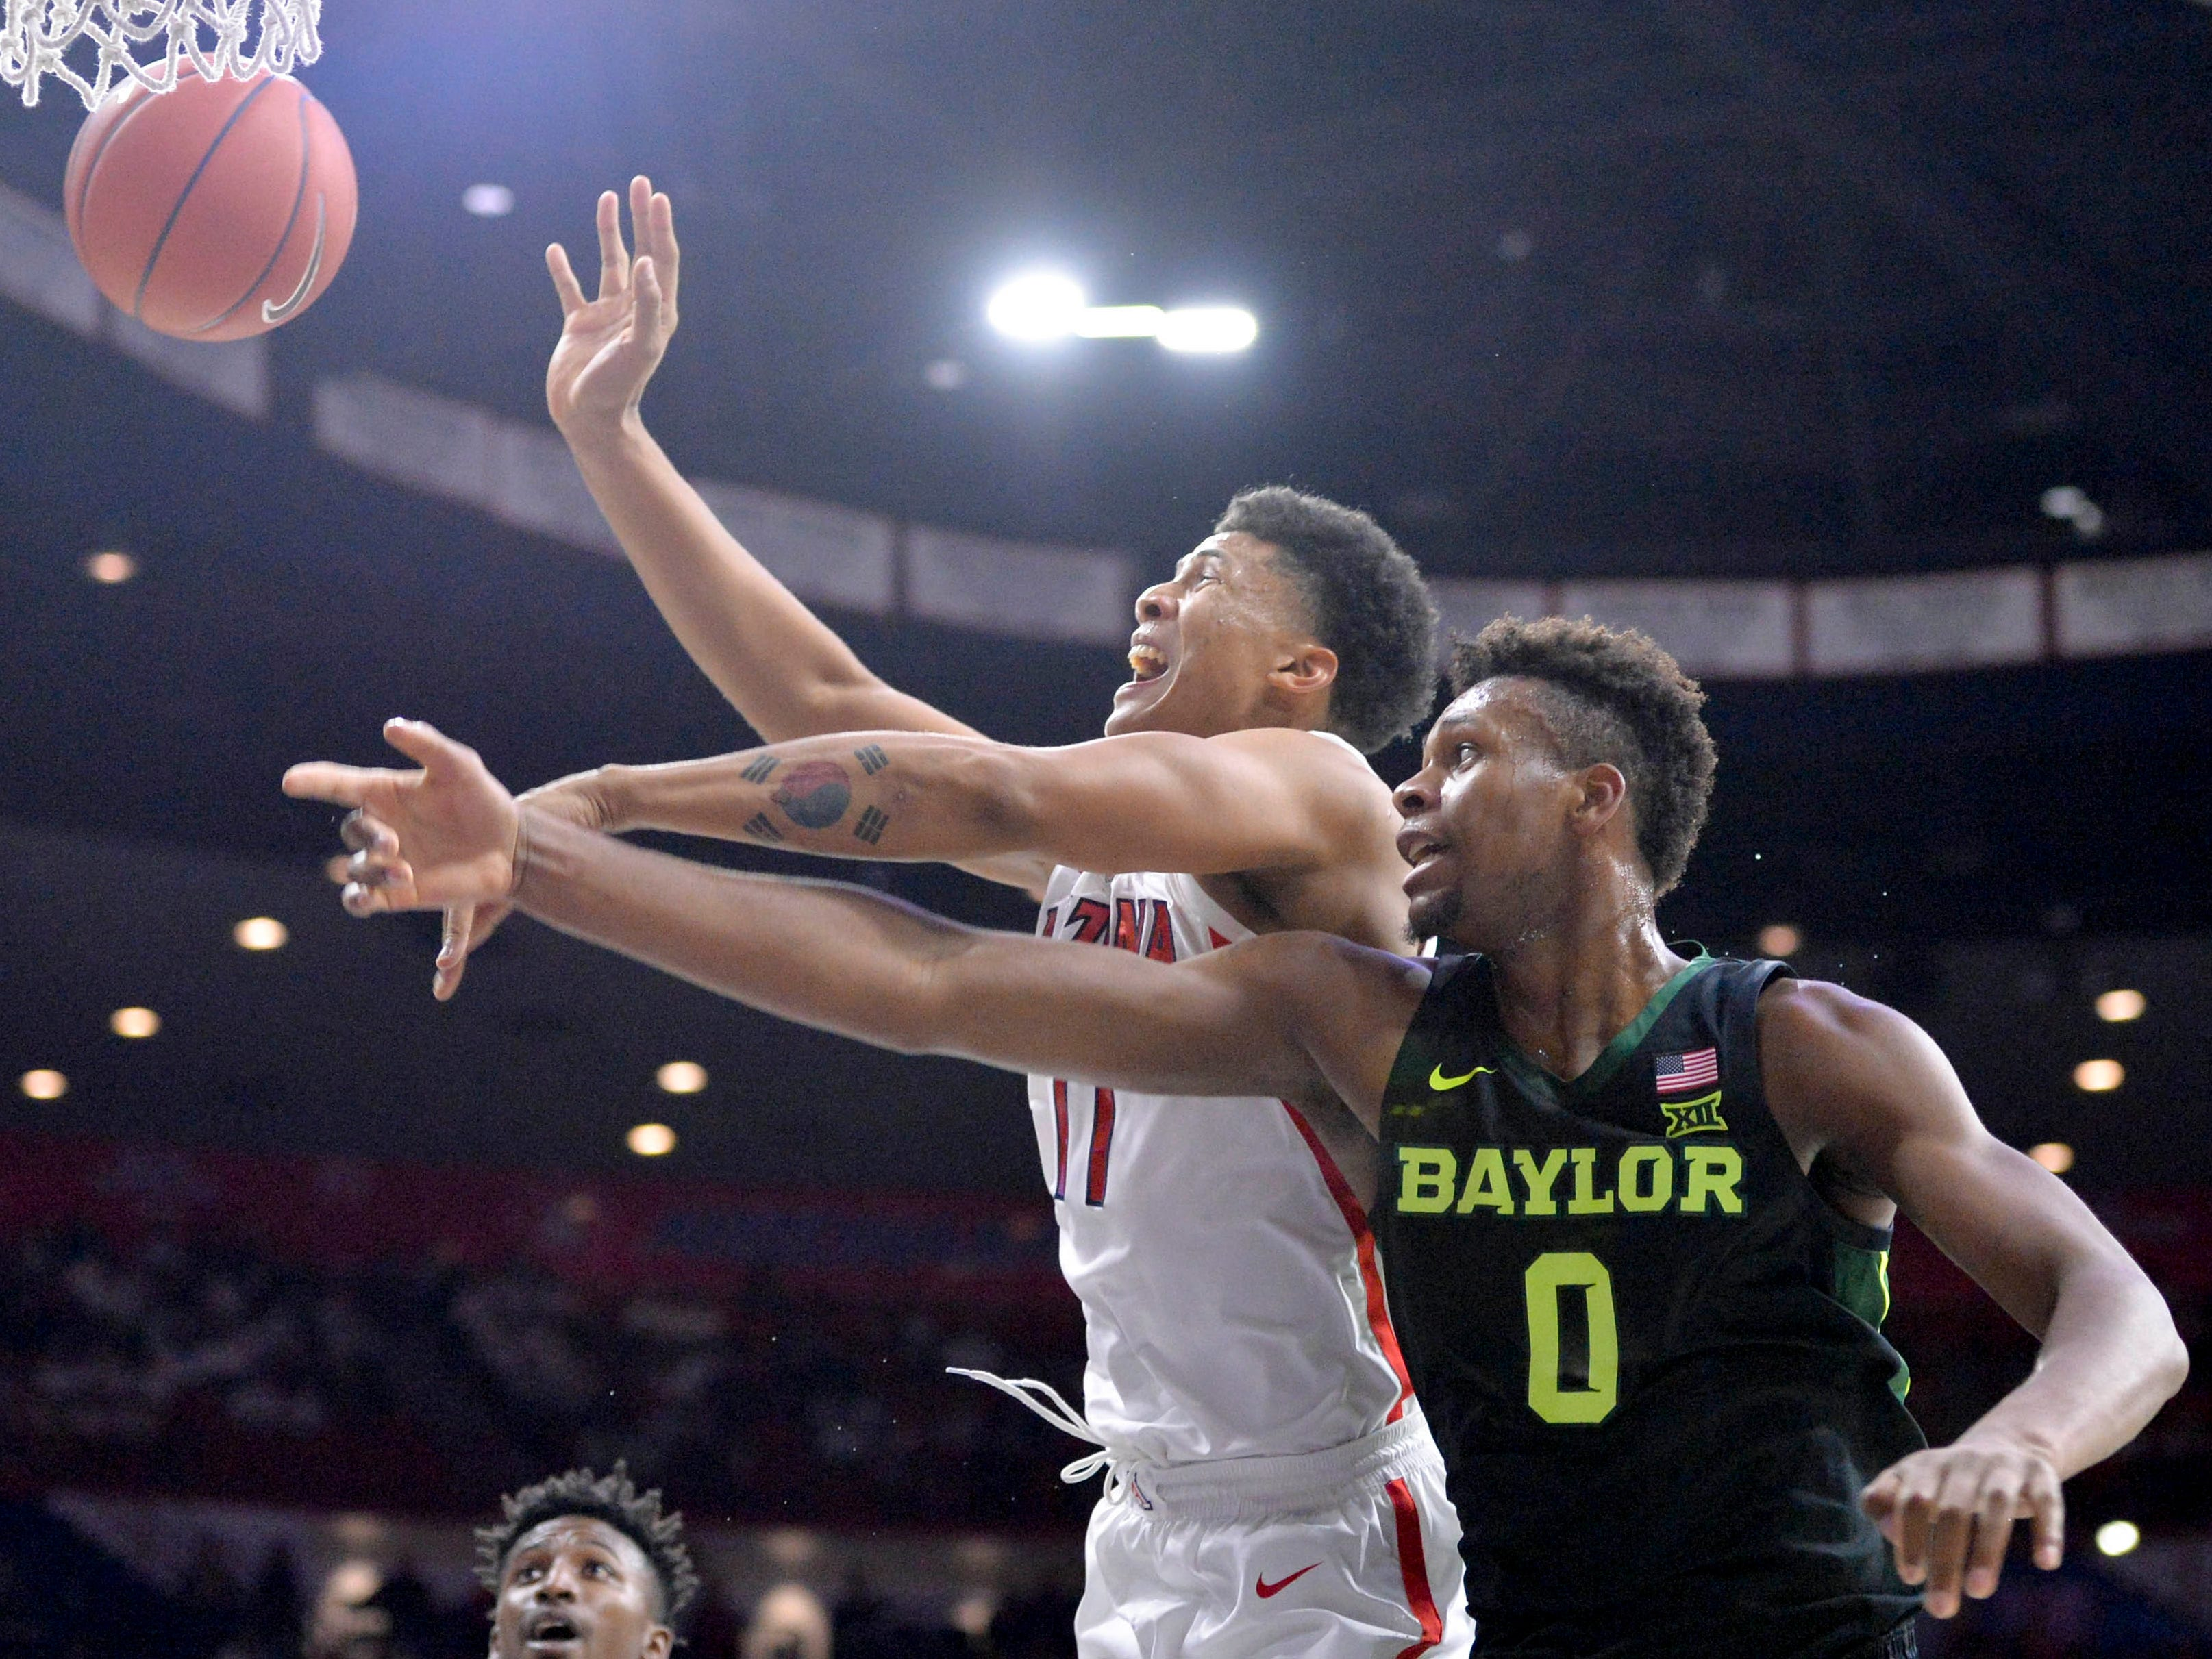 Dec 15, 2018; Tucson, AZ, USA; Arizona Wildcats forward Ira Lee (11) and Baylor Bears forward Flo Thamba (0) battle for the ball during the first half at McKale Center.